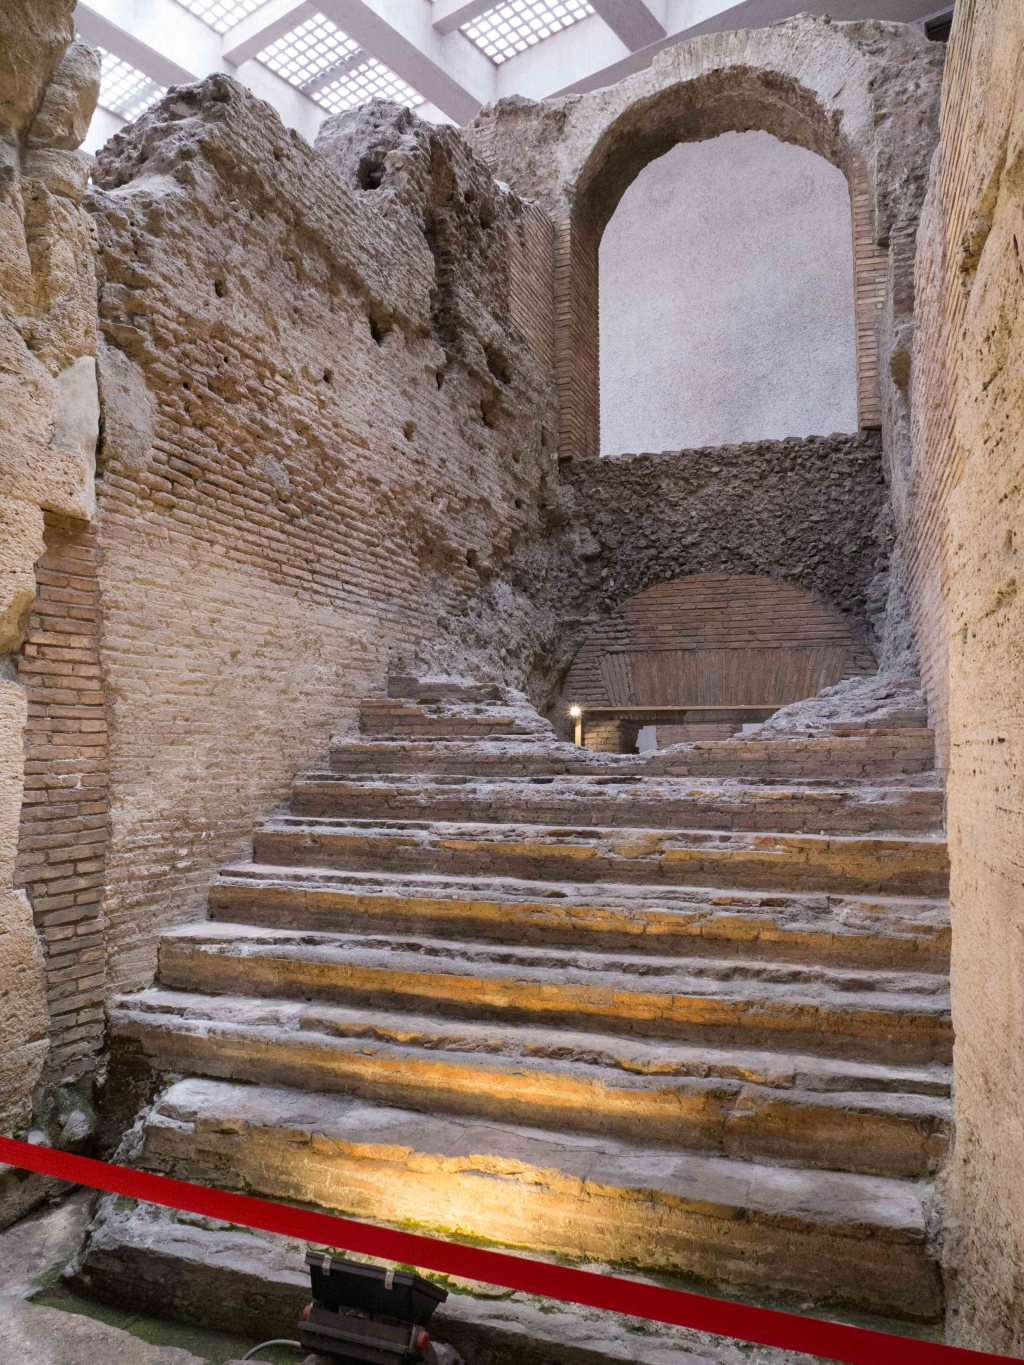 Stairs at Stadium of Domitian